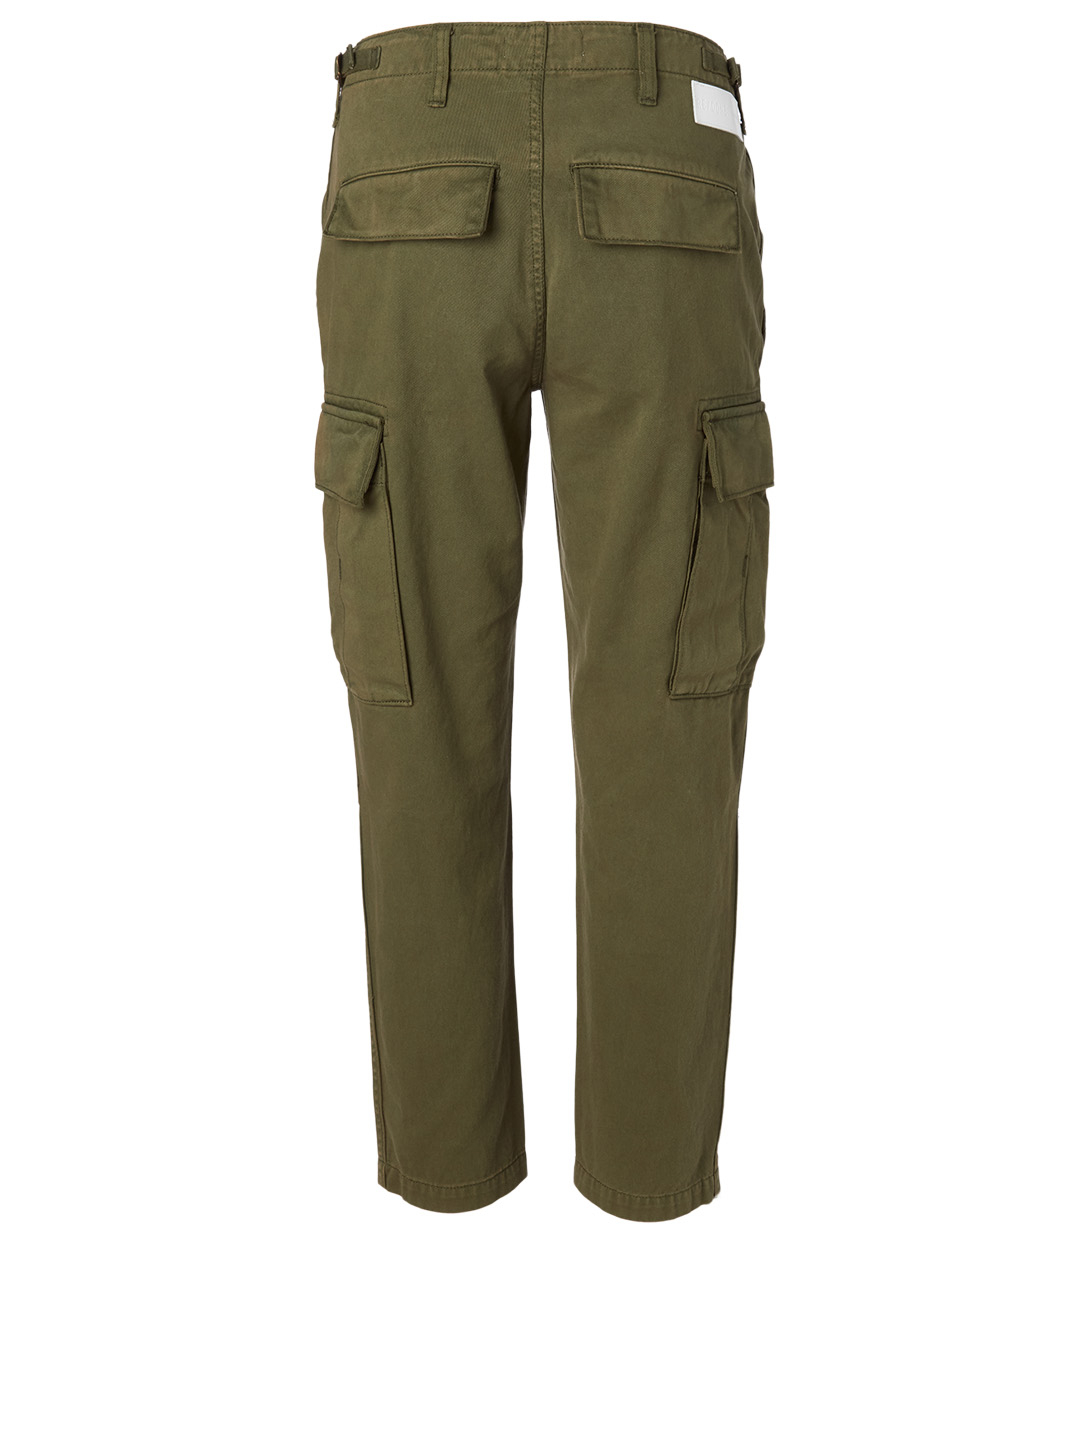 RE/DONE Cotton Cargo Pants Women's Green